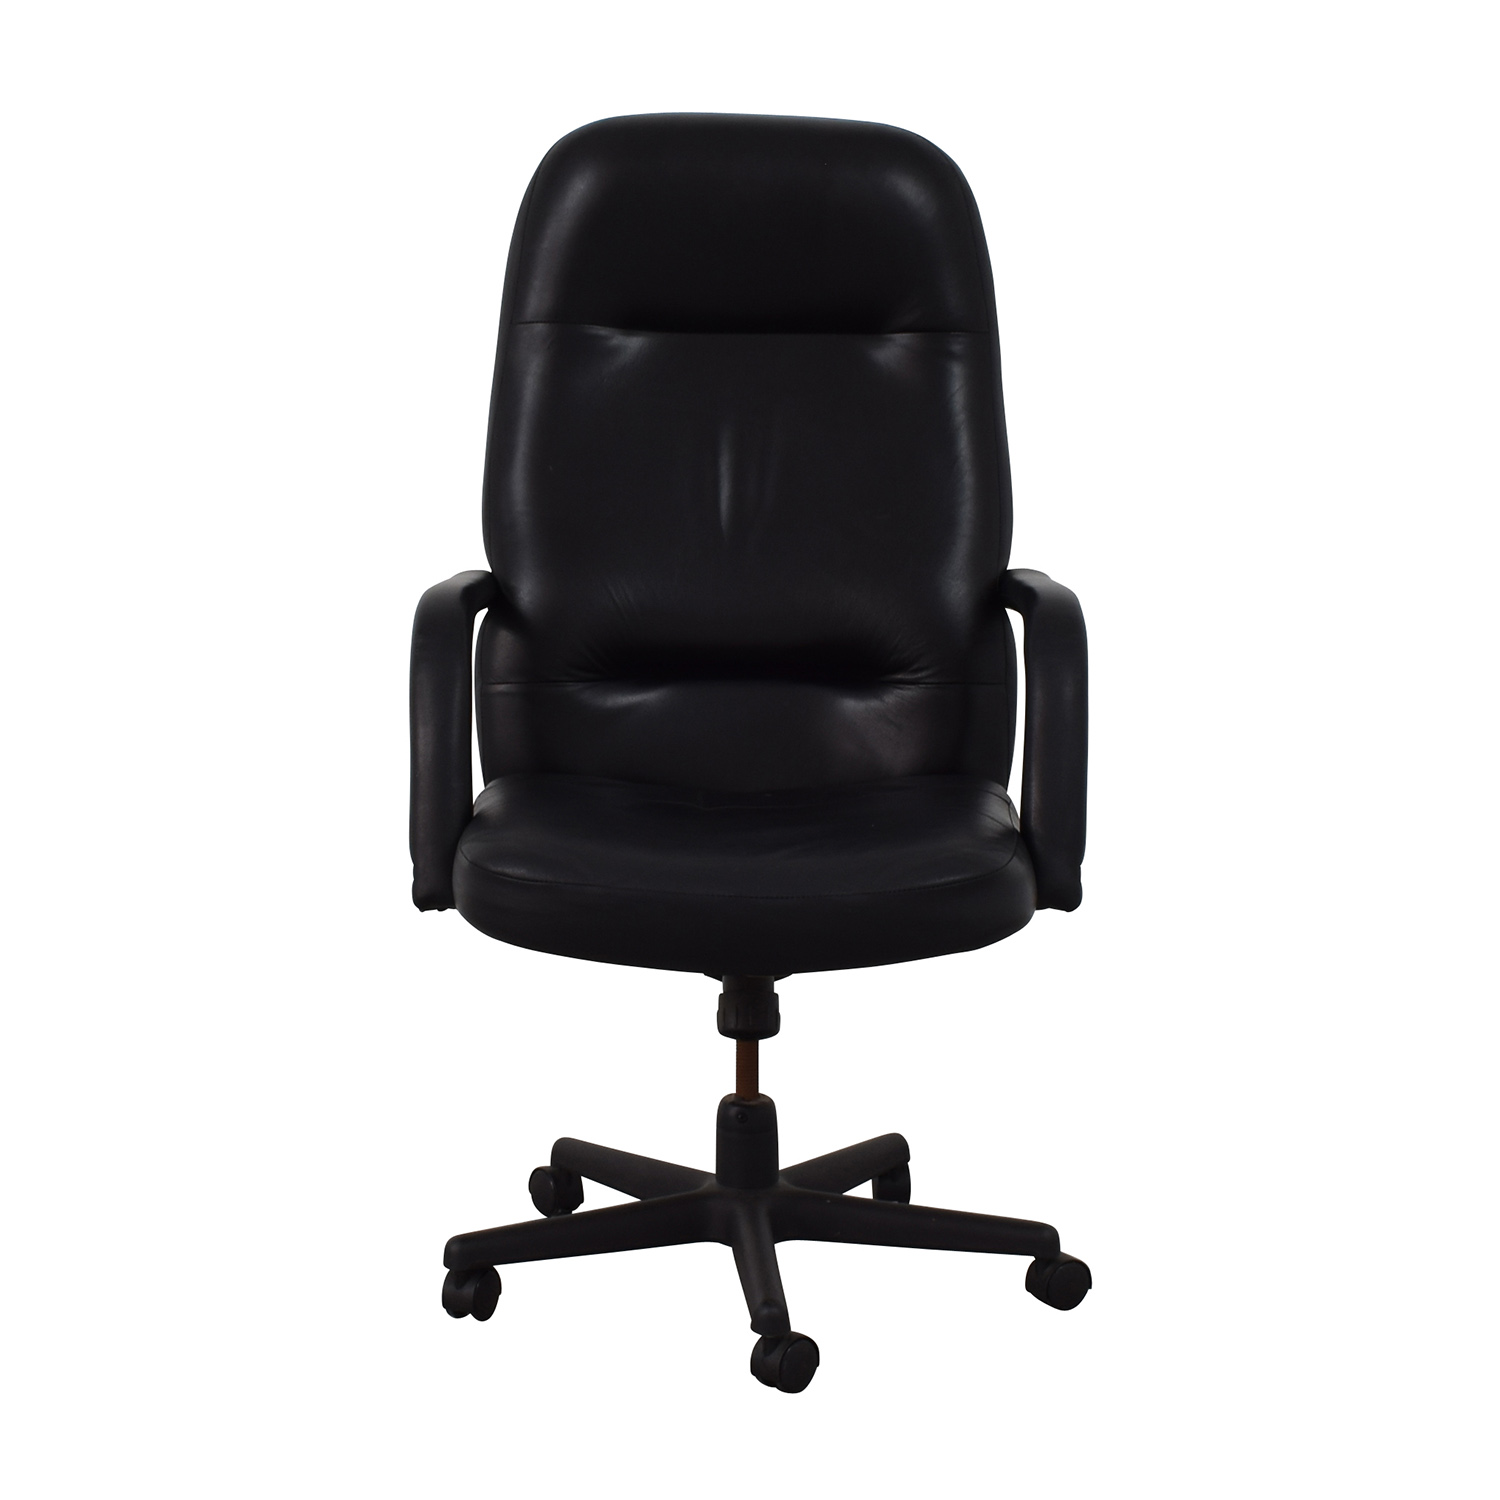 Black Leather Conference Room Chair coupon